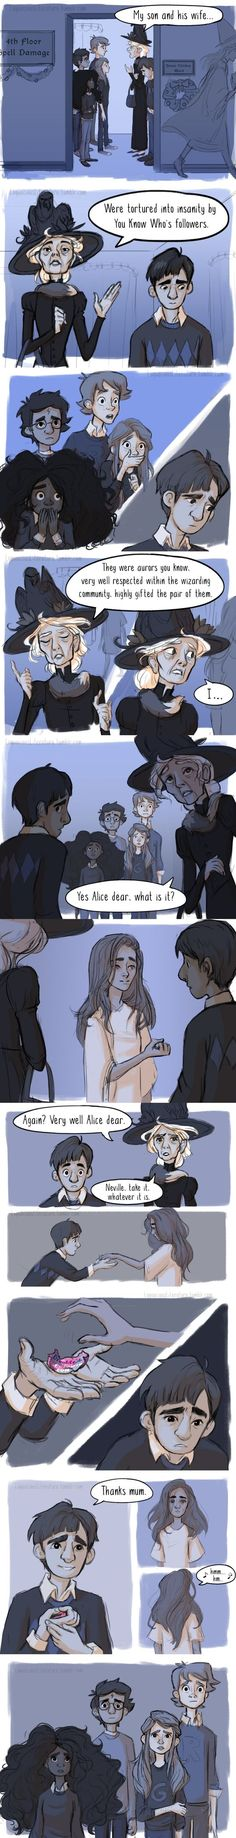 Scene from Order of the Phoenix: This scene should have been in the movies! I also like how Harry and Hermione are portrayed as people of color!: